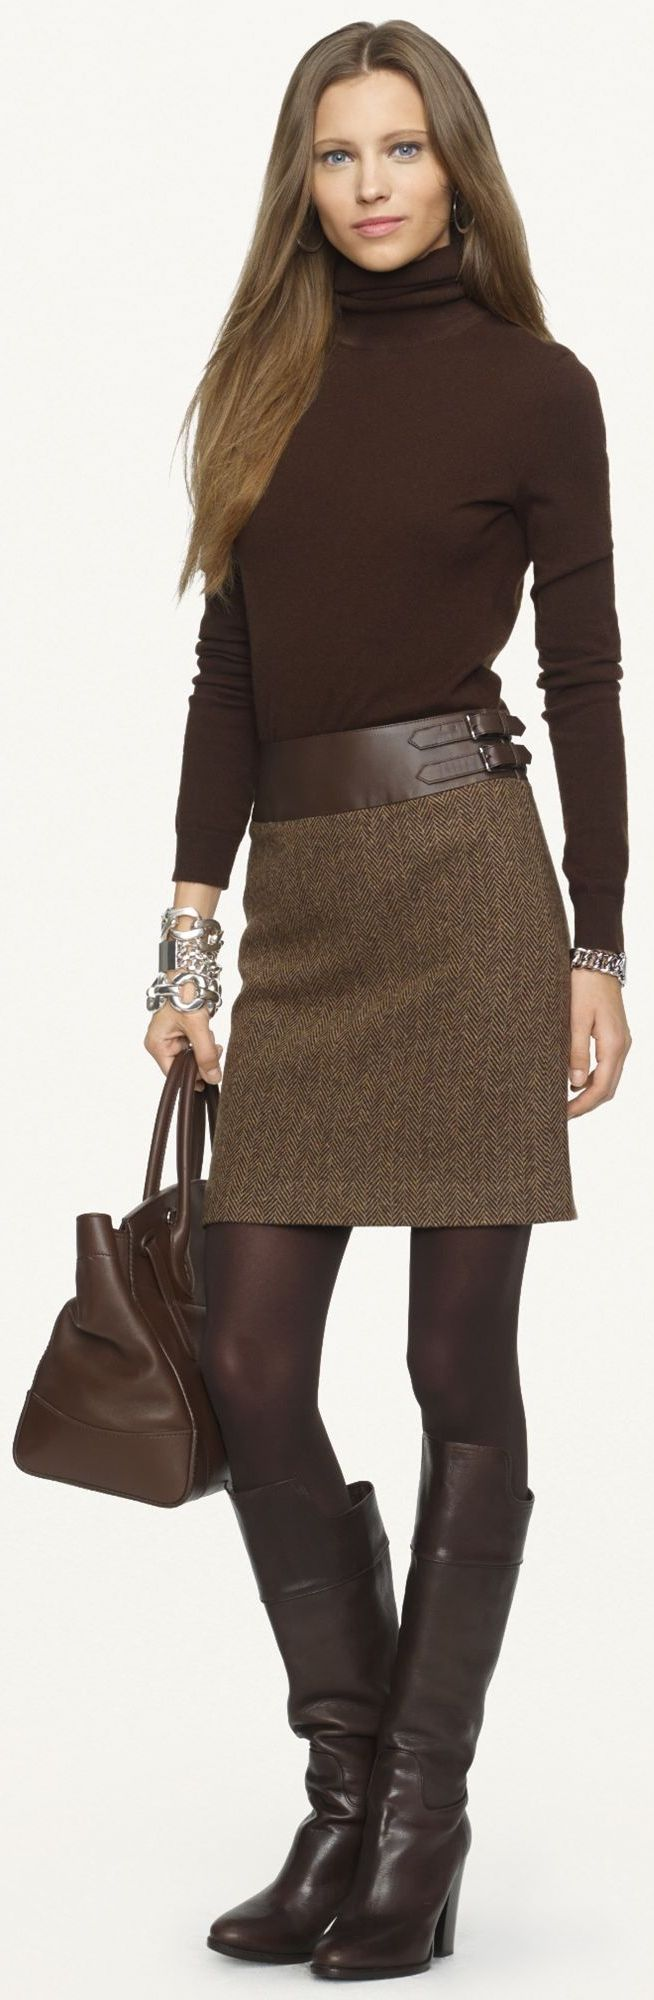 Ralph Lauren Black Label - Leather-Trimmed Kieron Skirt